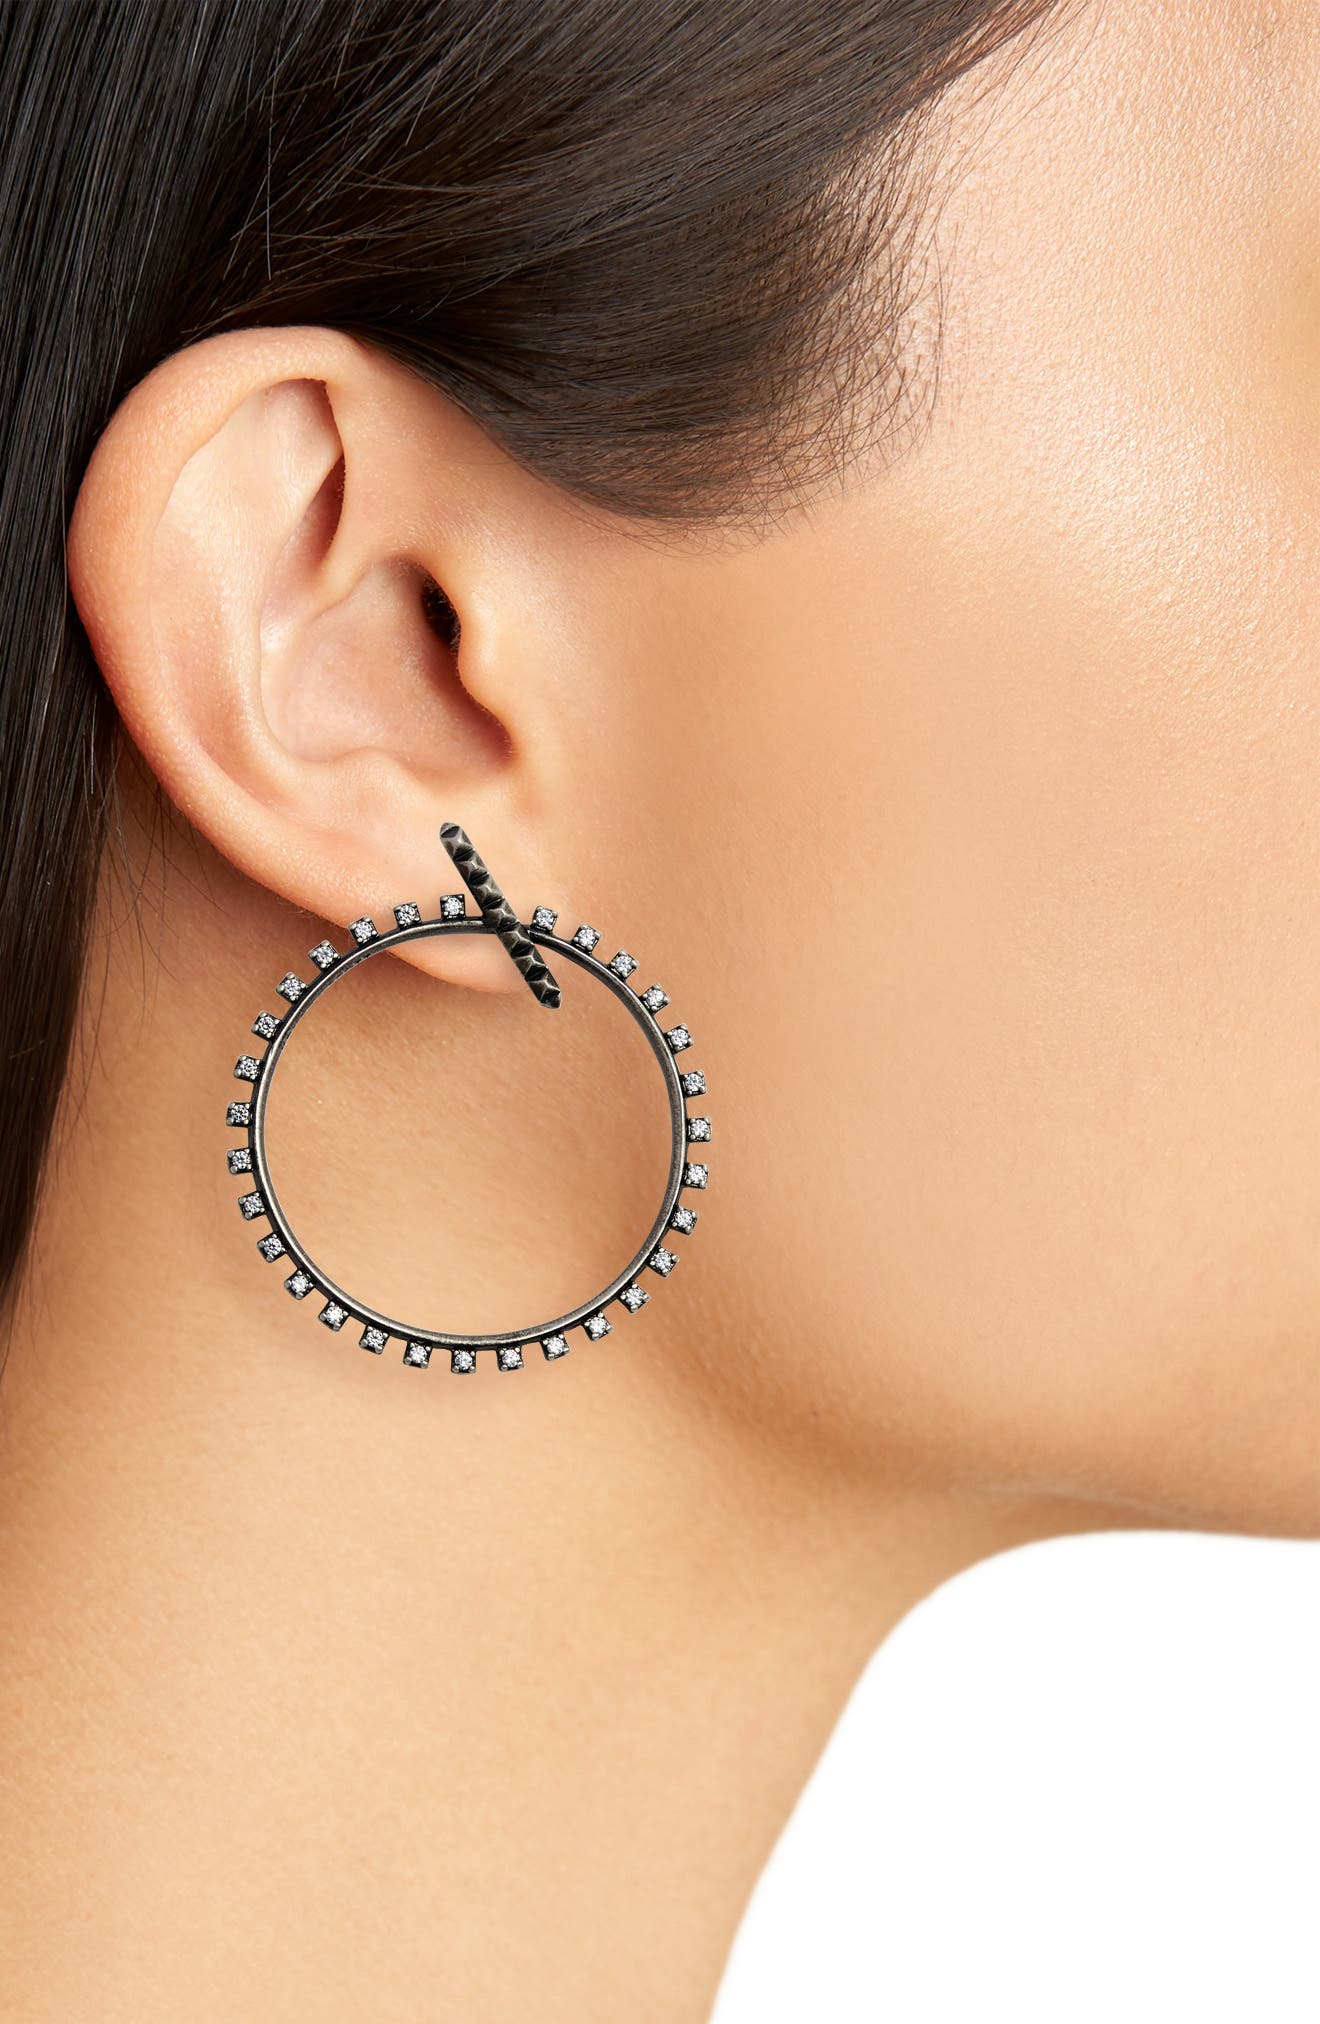 Charlie Grace Hoop Earrings,                             Alternate thumbnail 2, color,                             040